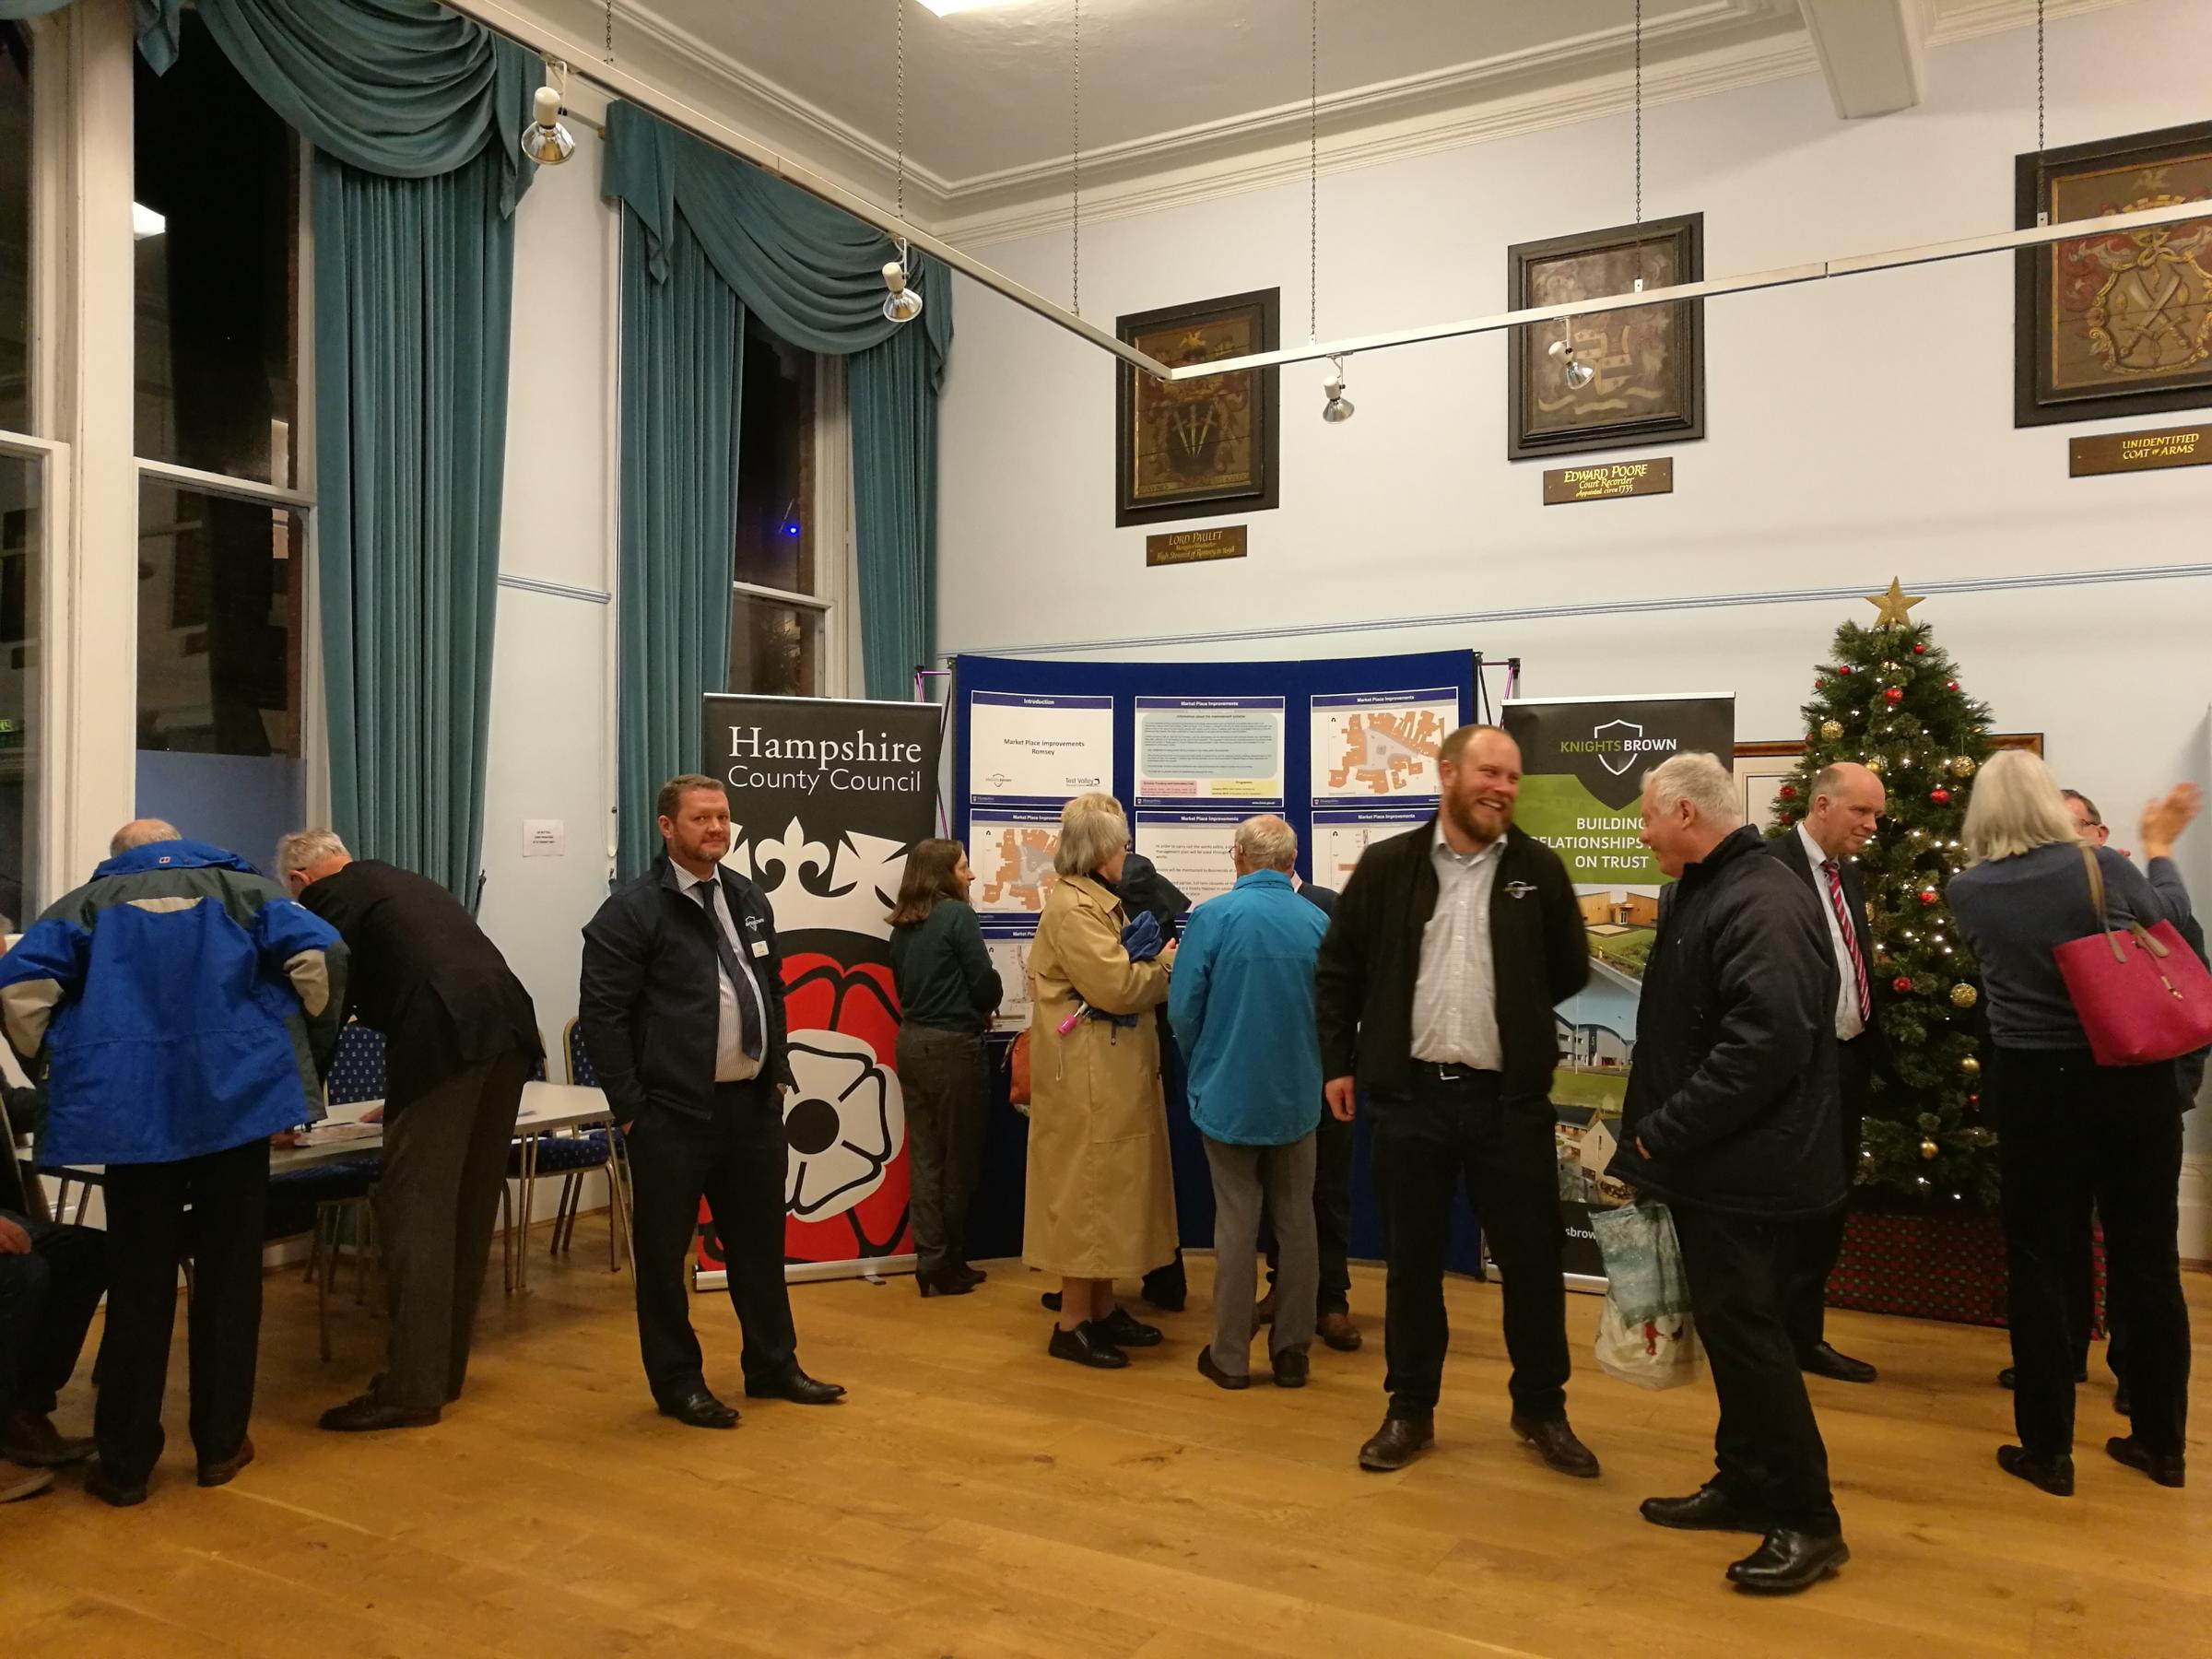 The public meeting at Romsey Town Hall on improvements to Market Place